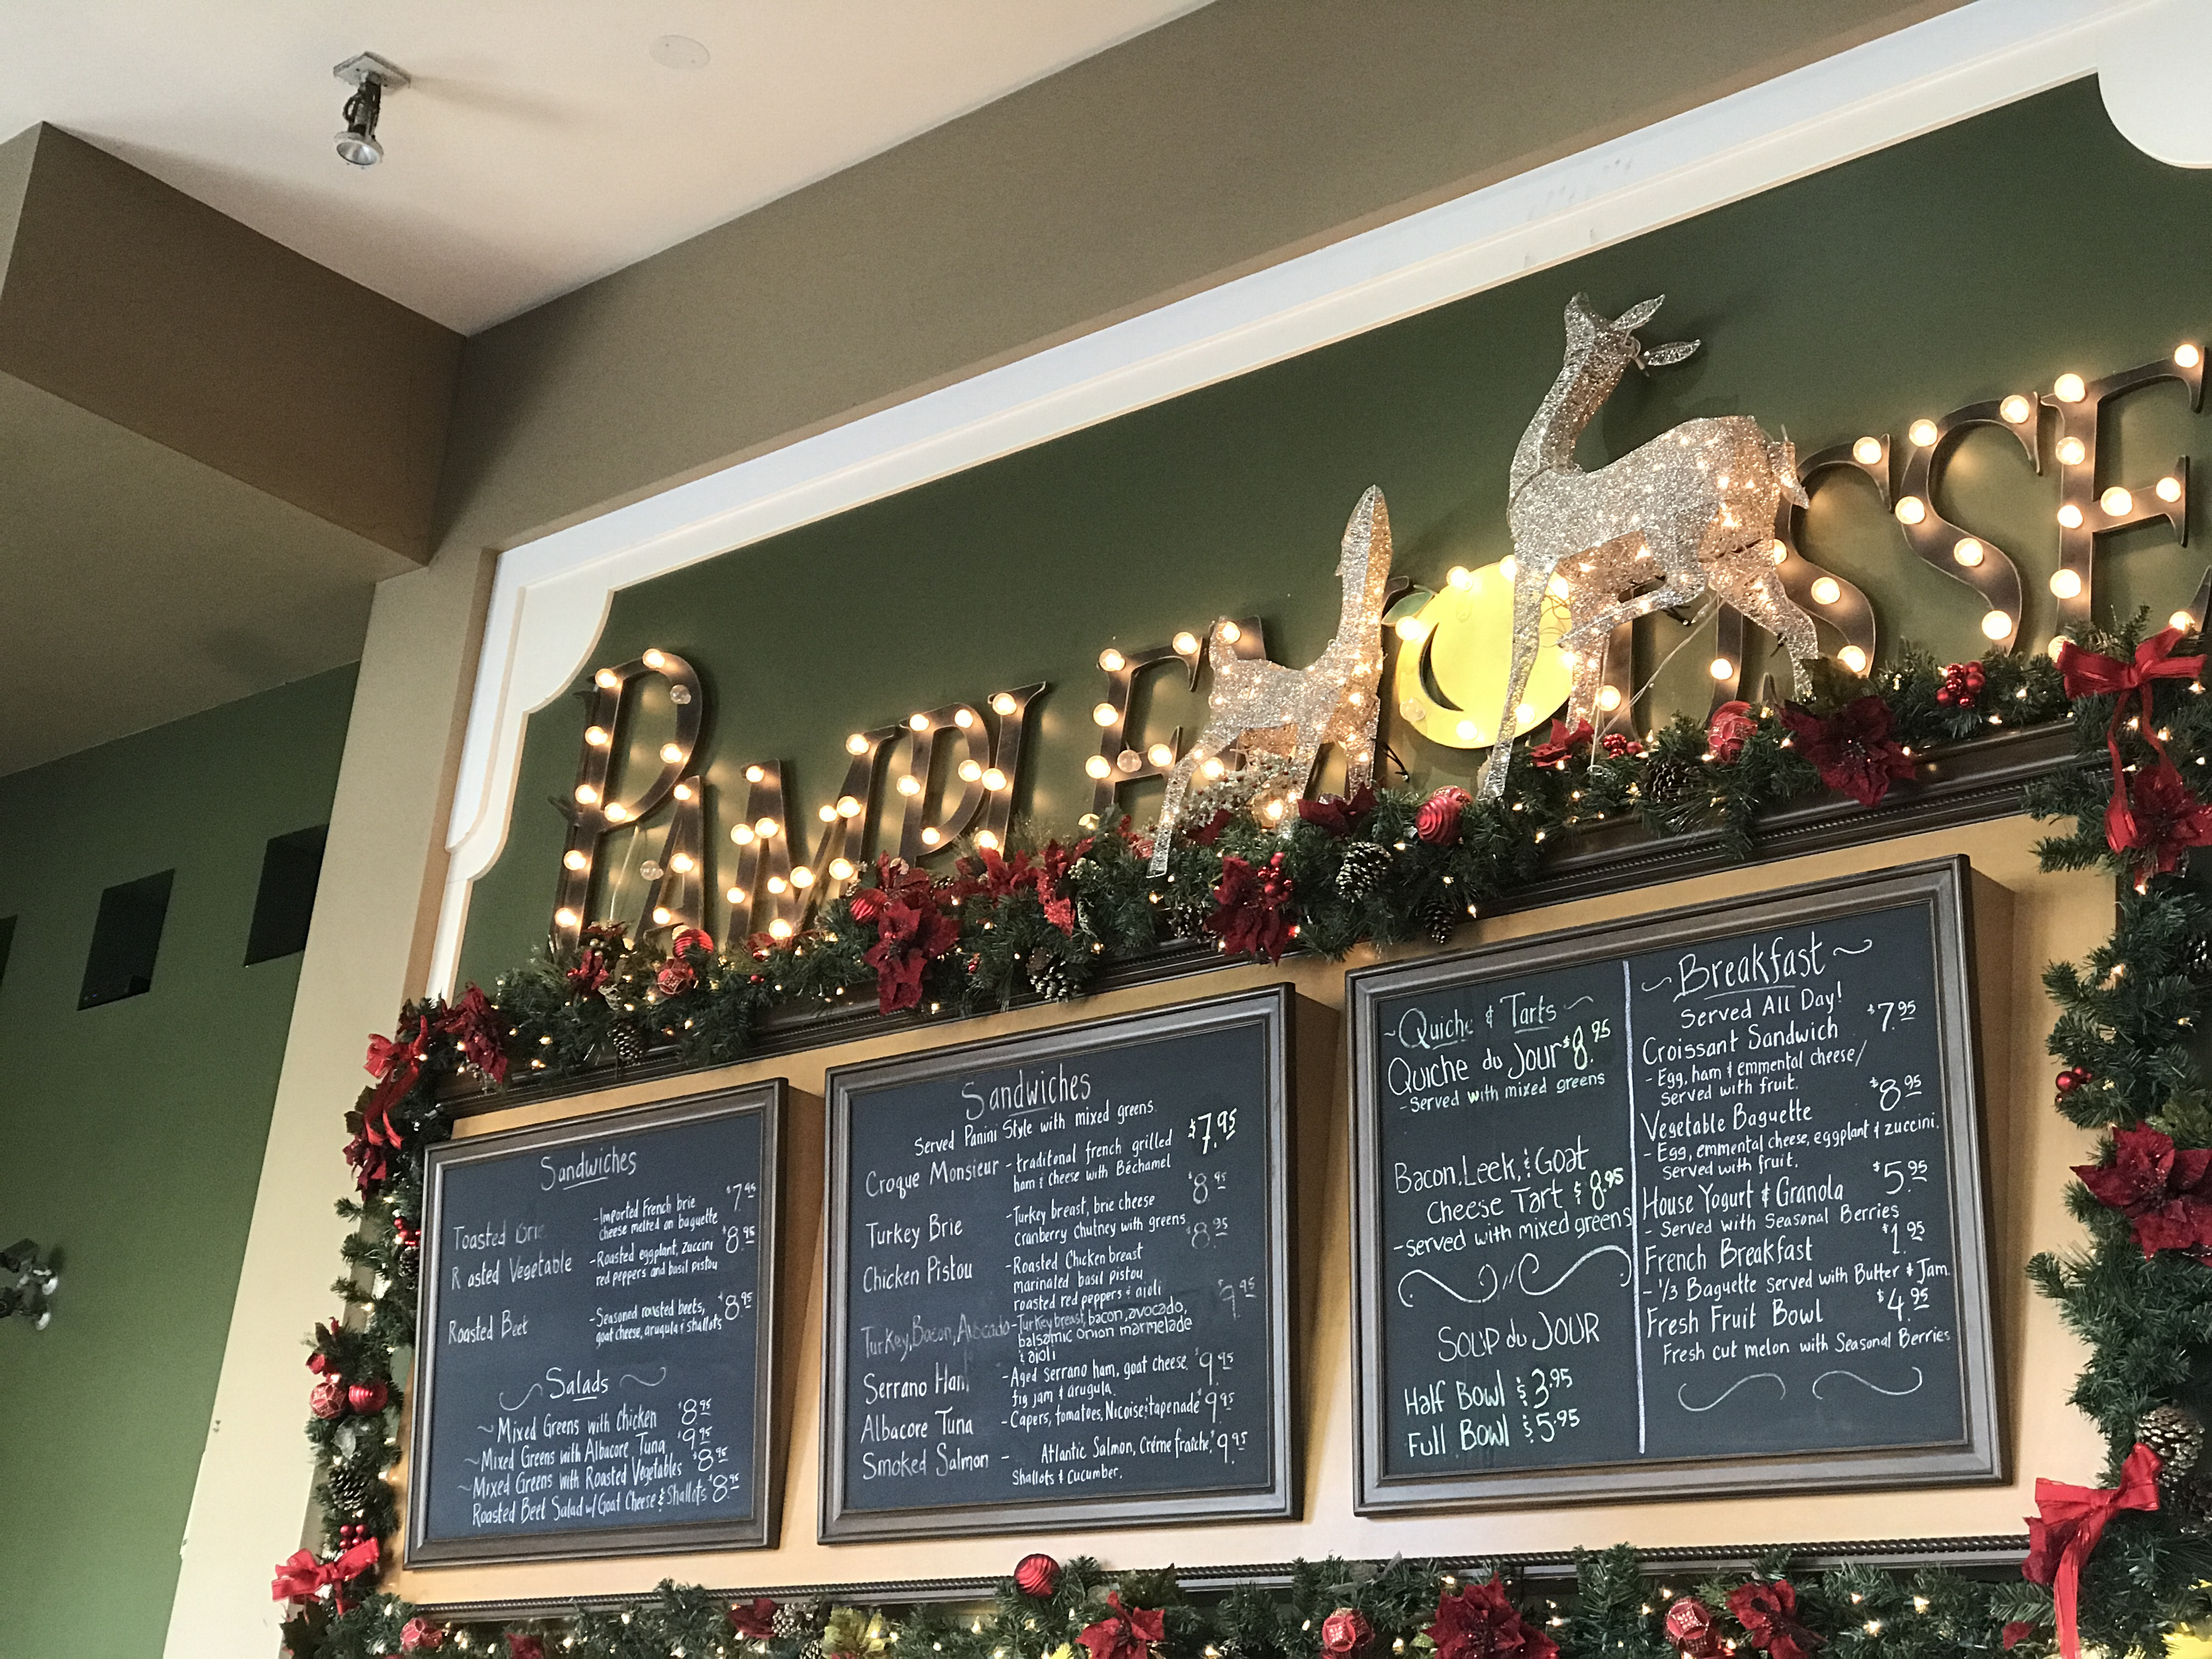 The Funnest Word to Say in French – Pamplemousse in Redwood City, California